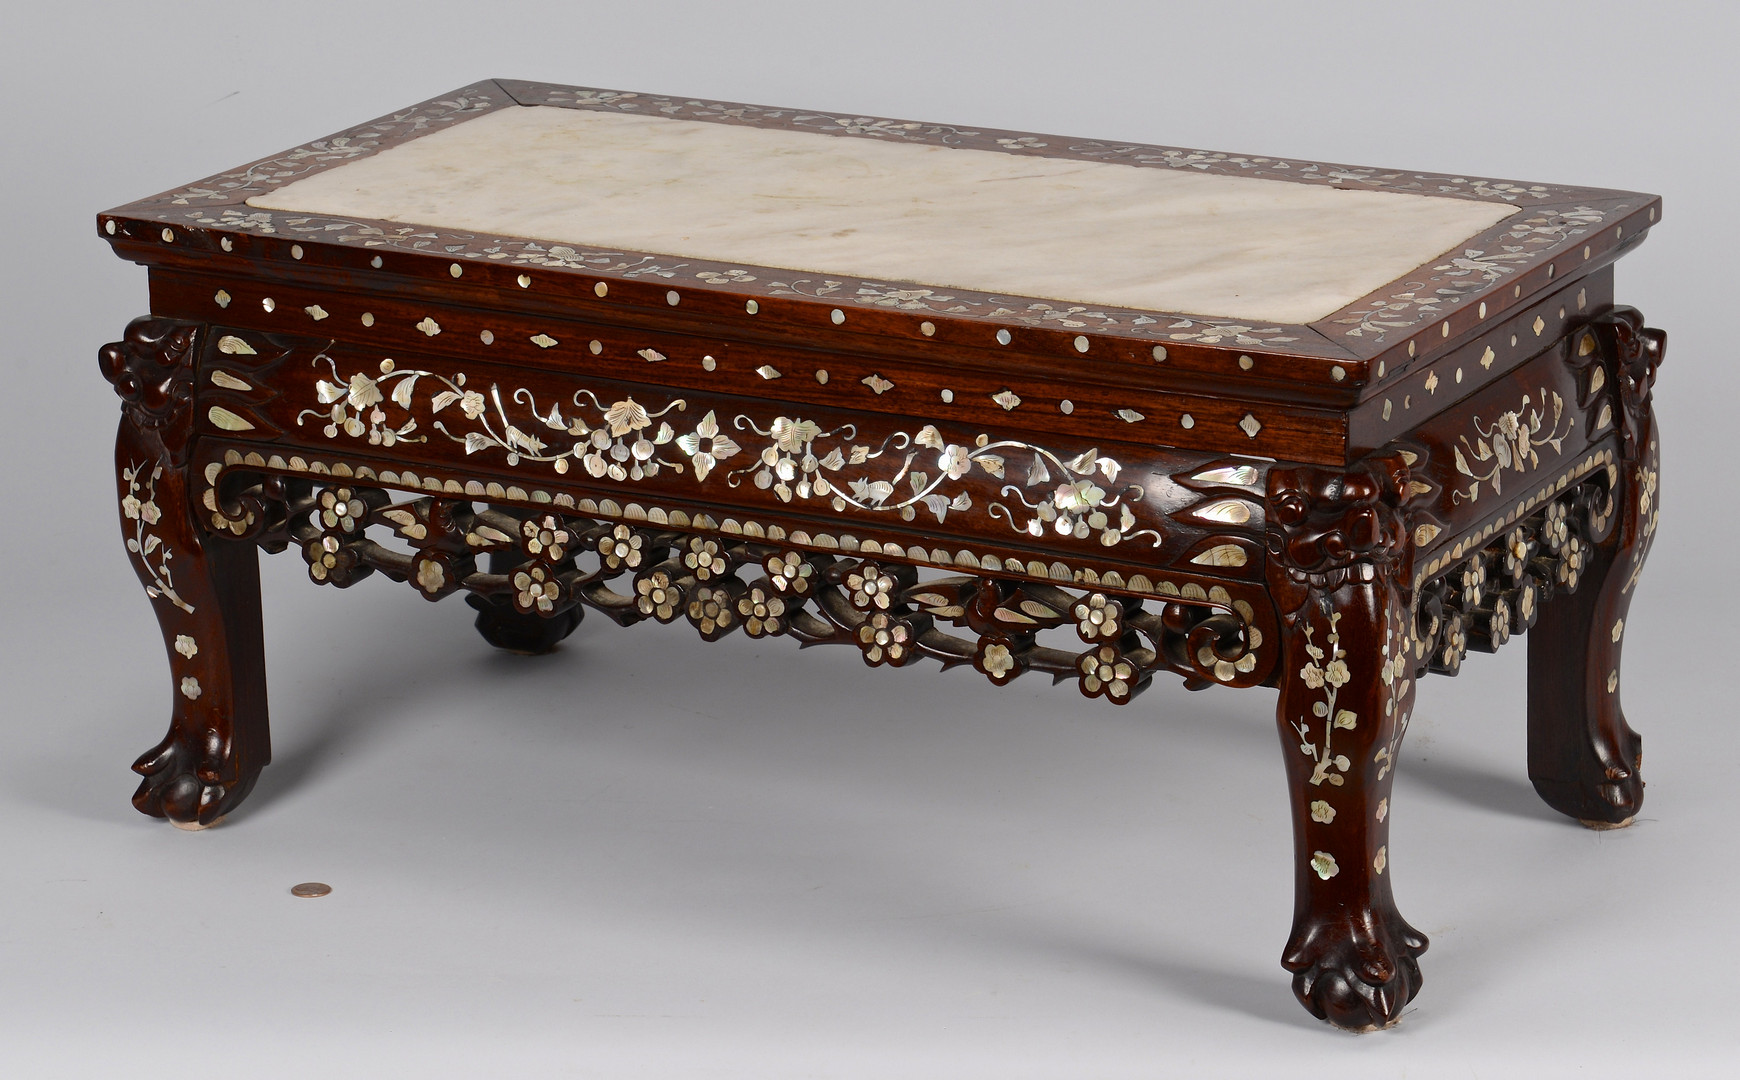 Lot 222: Inlaid Rosewood Low Table